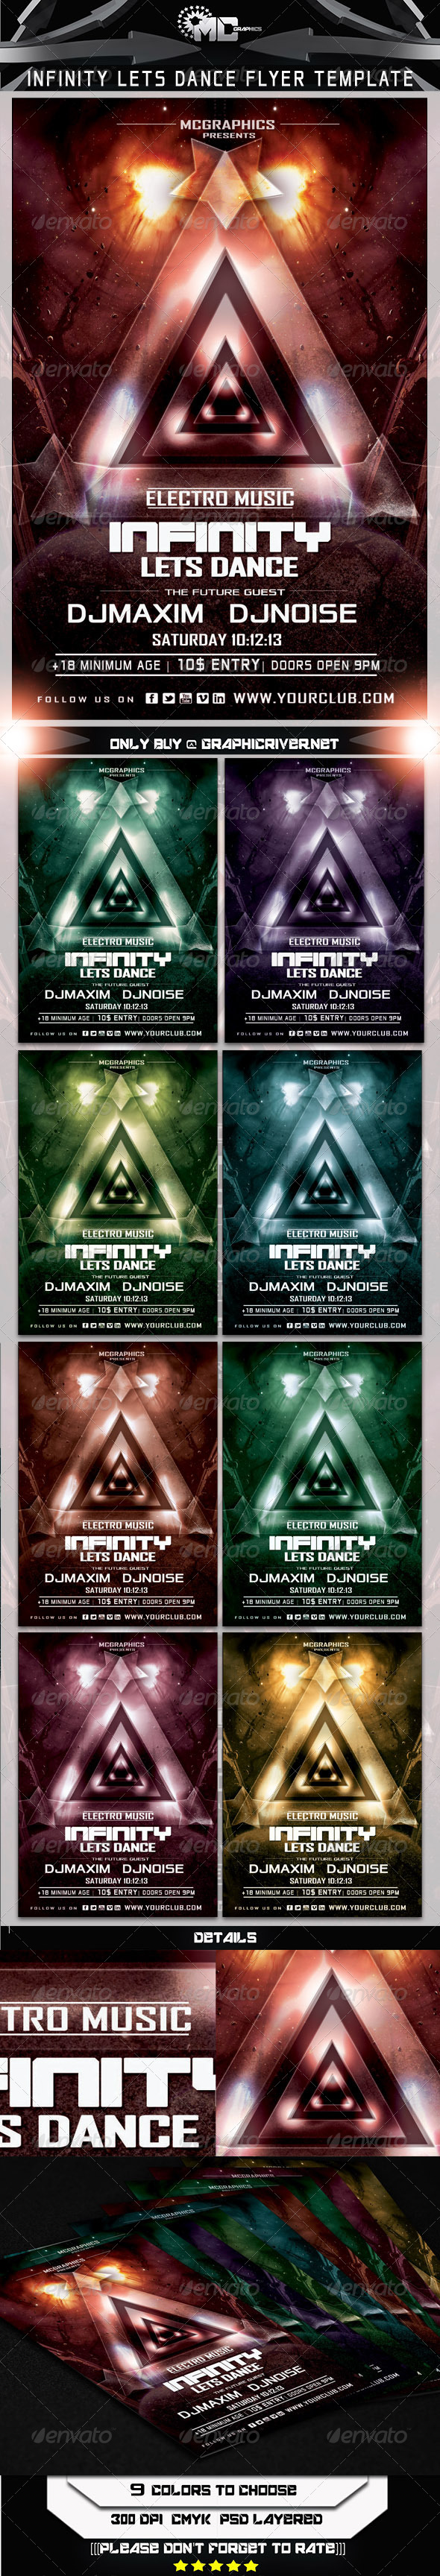 Infinity Lets Dance Flyer Template - Print Templates